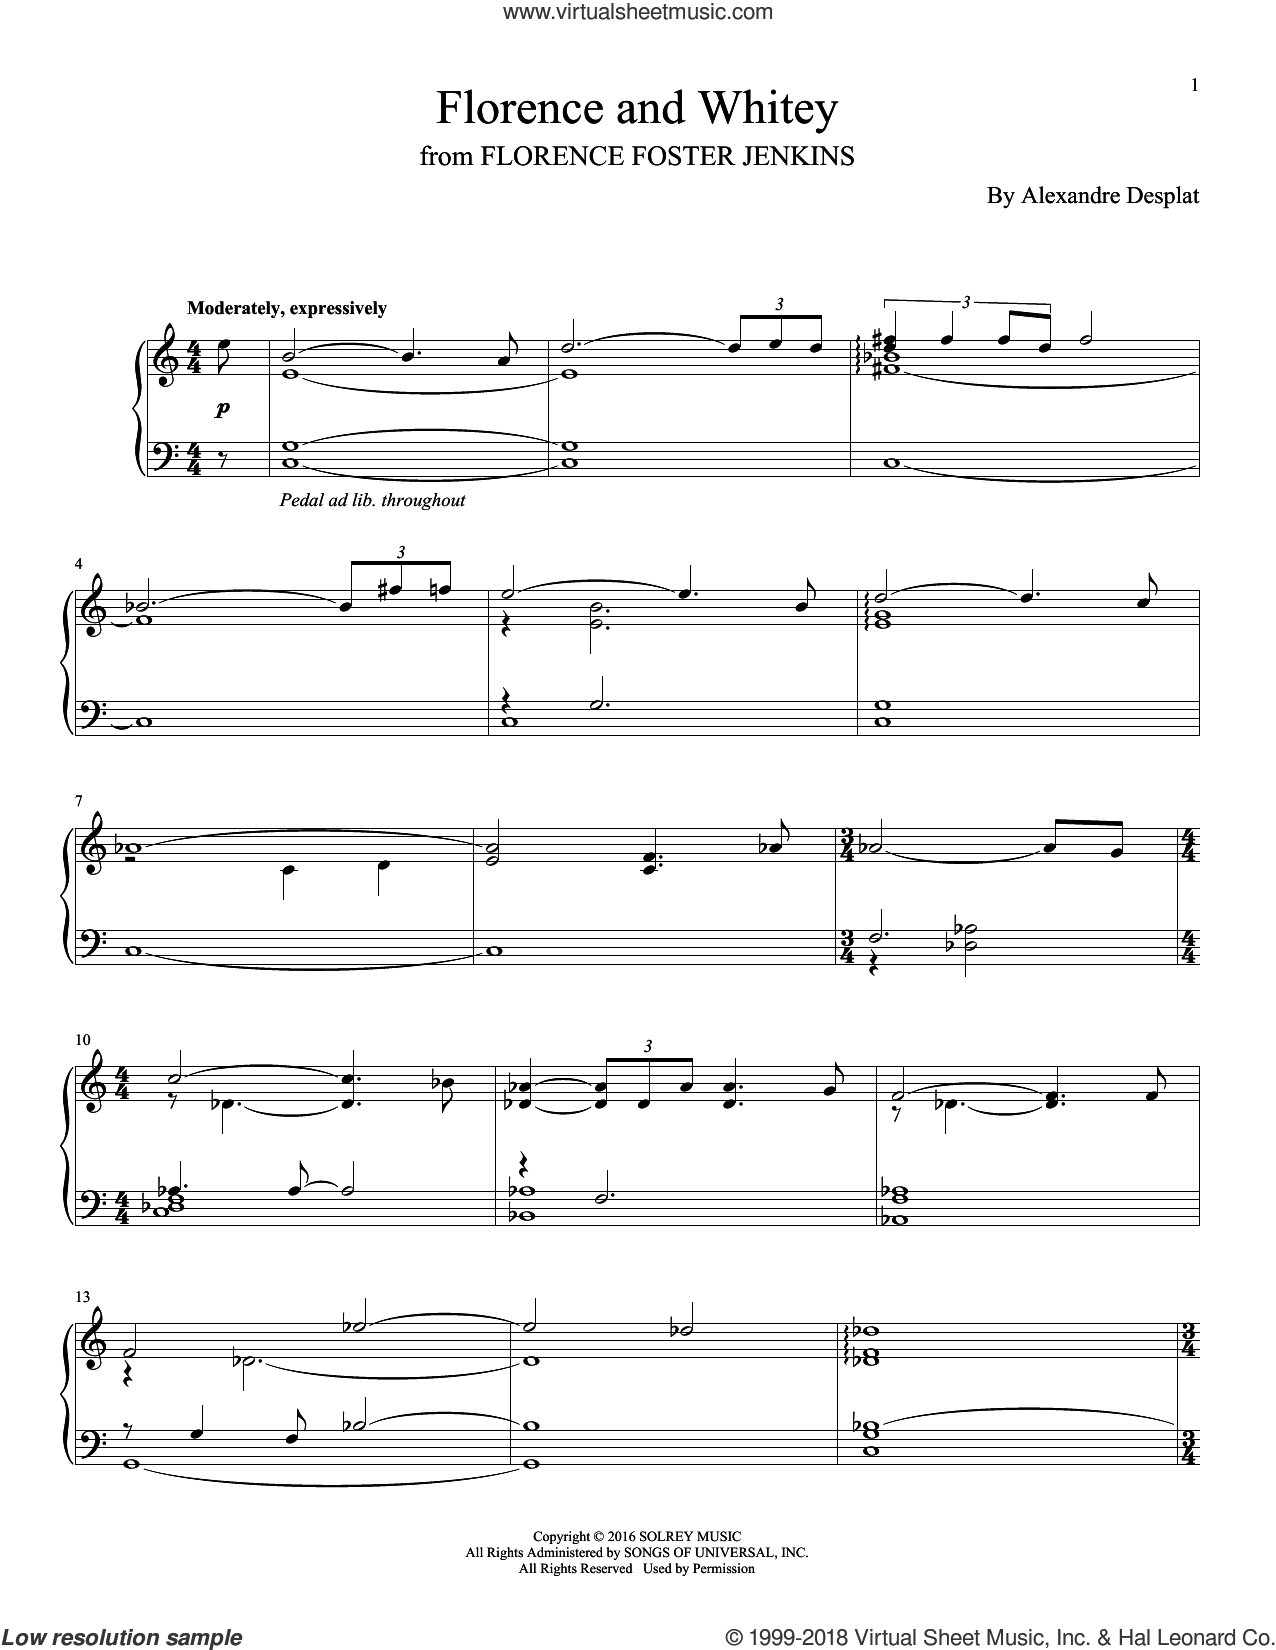 Florence And Whitey sheet music for piano solo by Alexandre Desplat, intermediate skill level